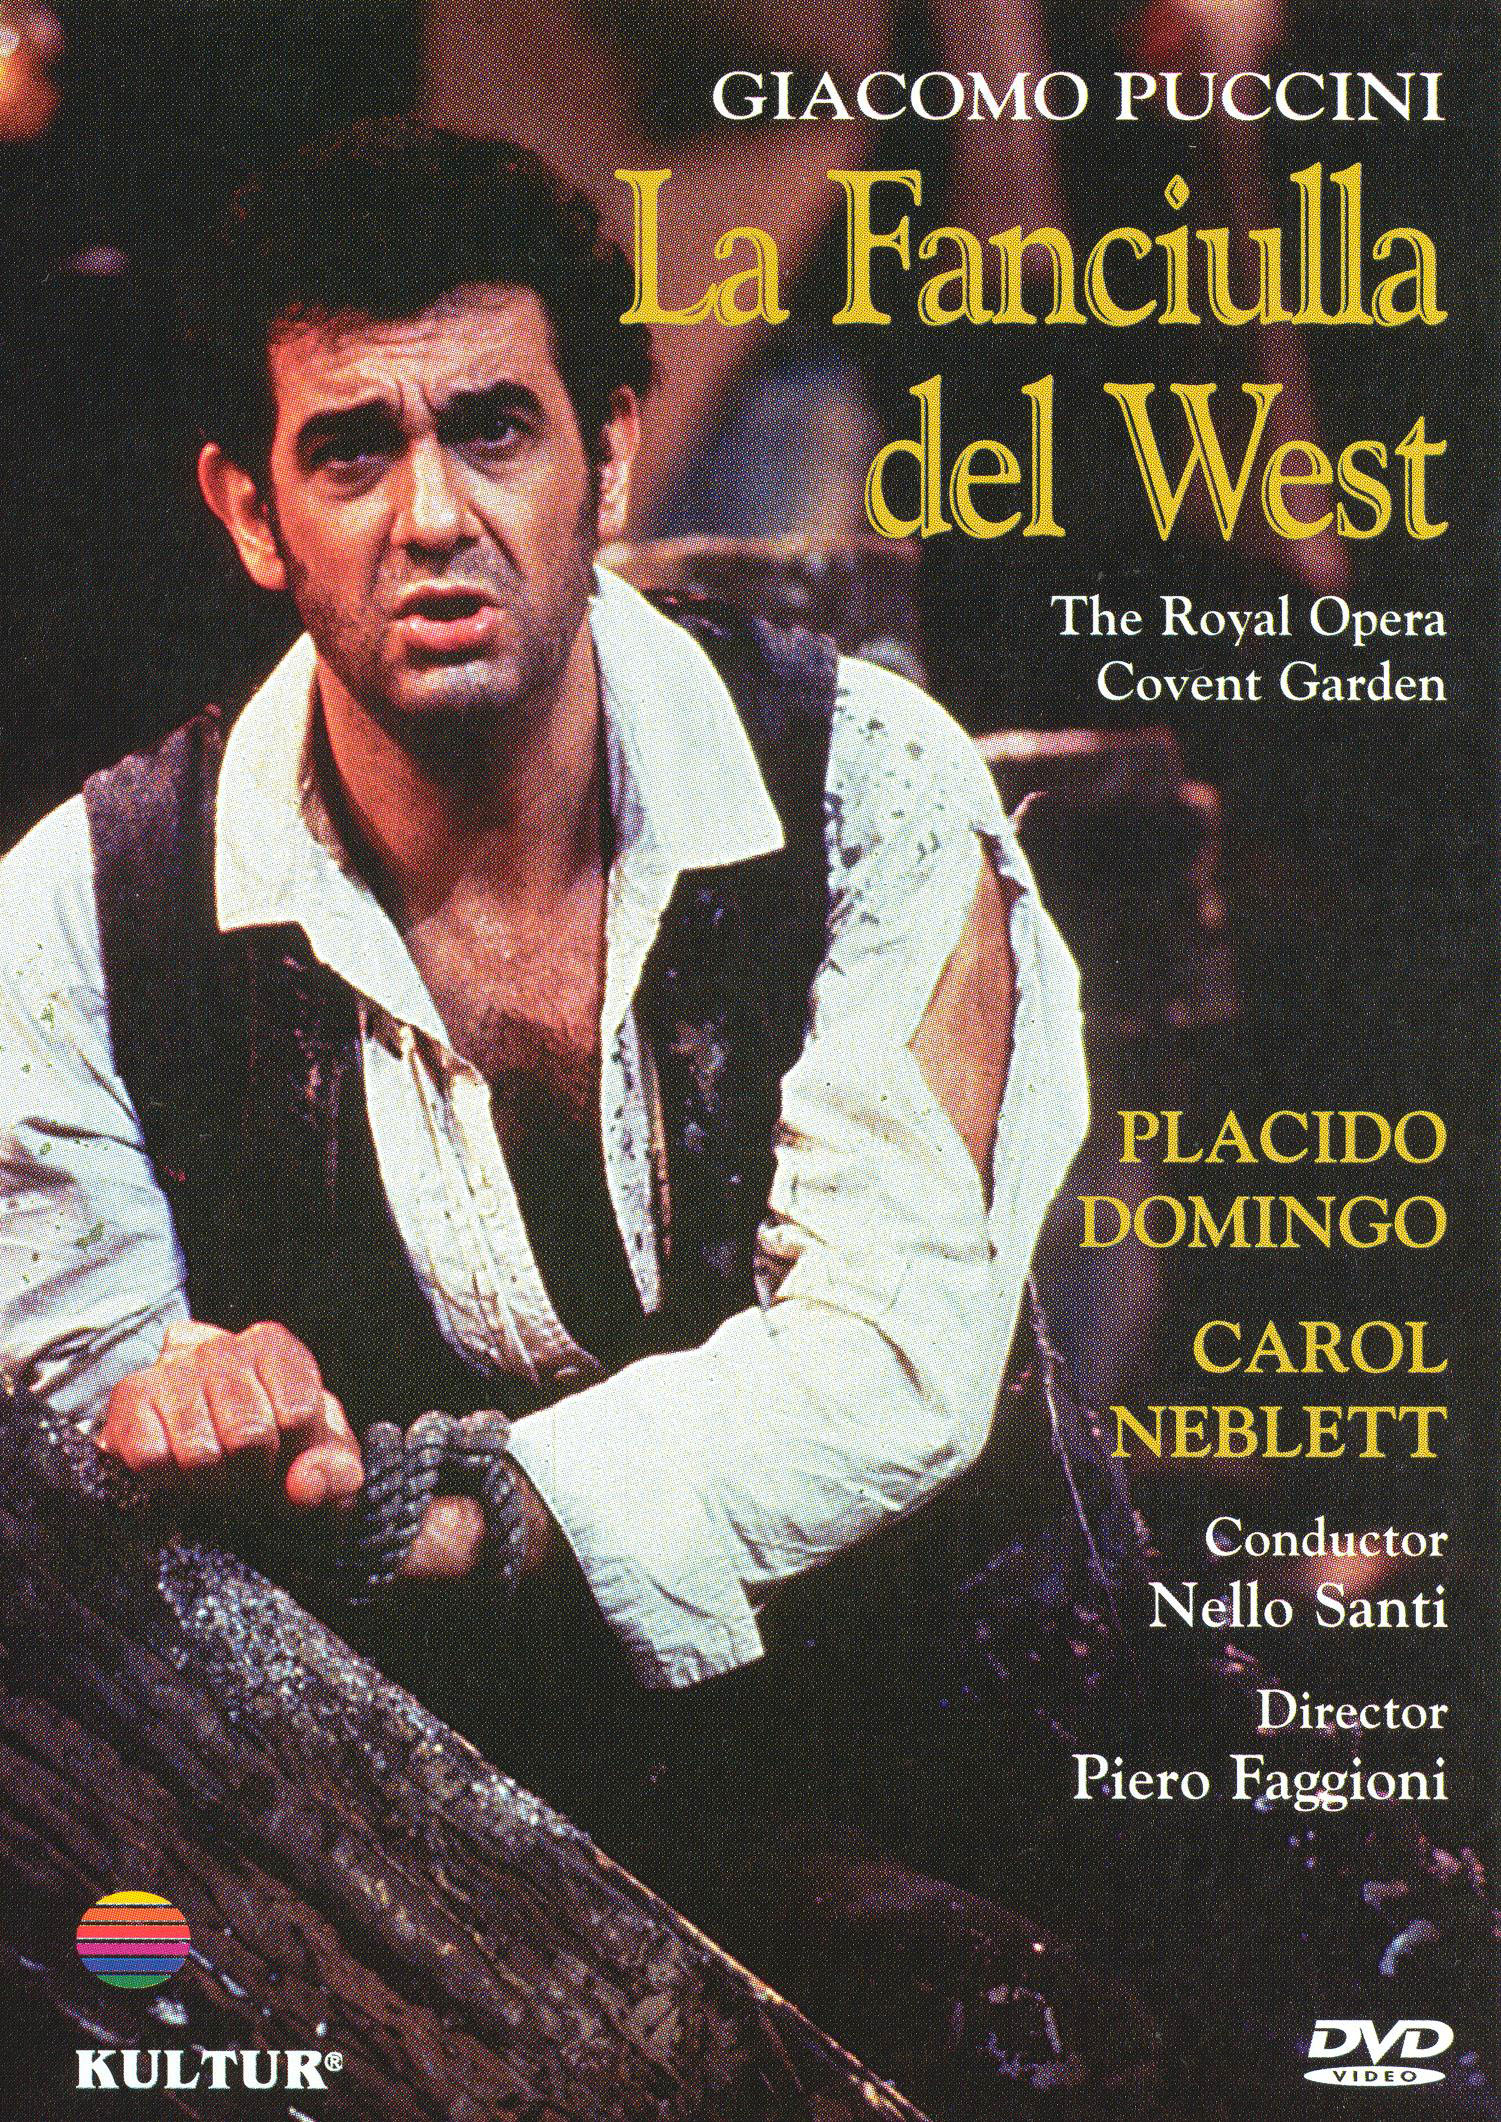 La Fanciulla del West (The Royal Opera)